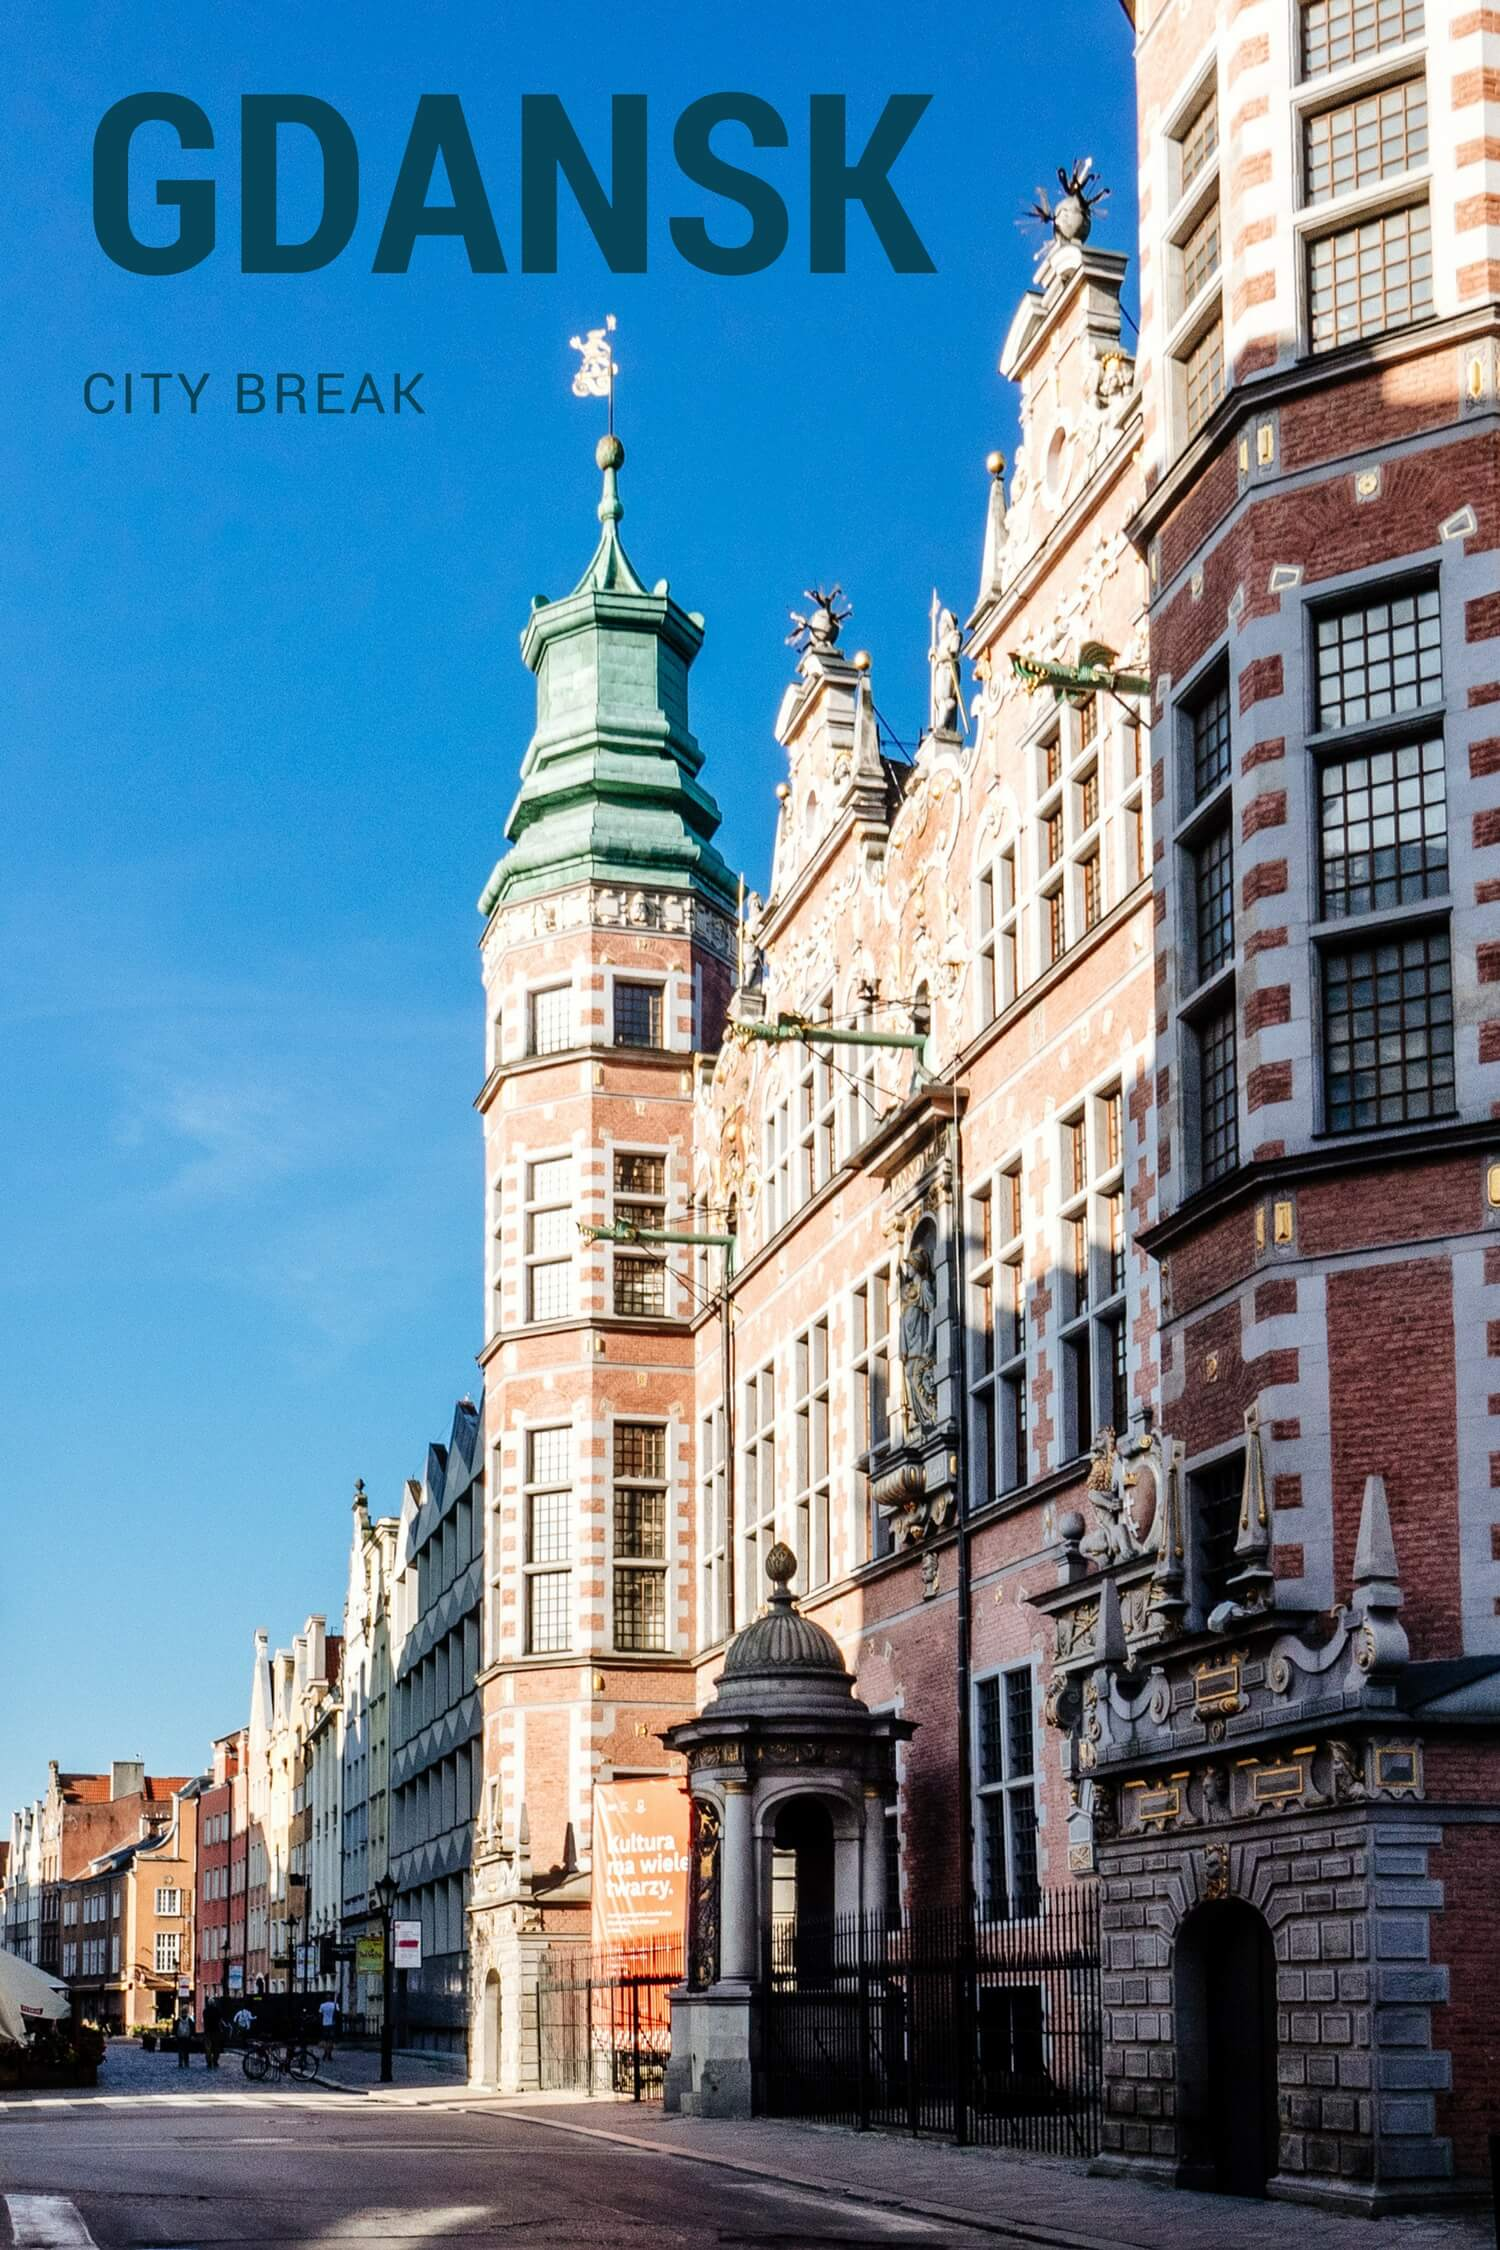 One of the beautiful city gates in Gdansk, the northern Polish city. #gdansk #poland